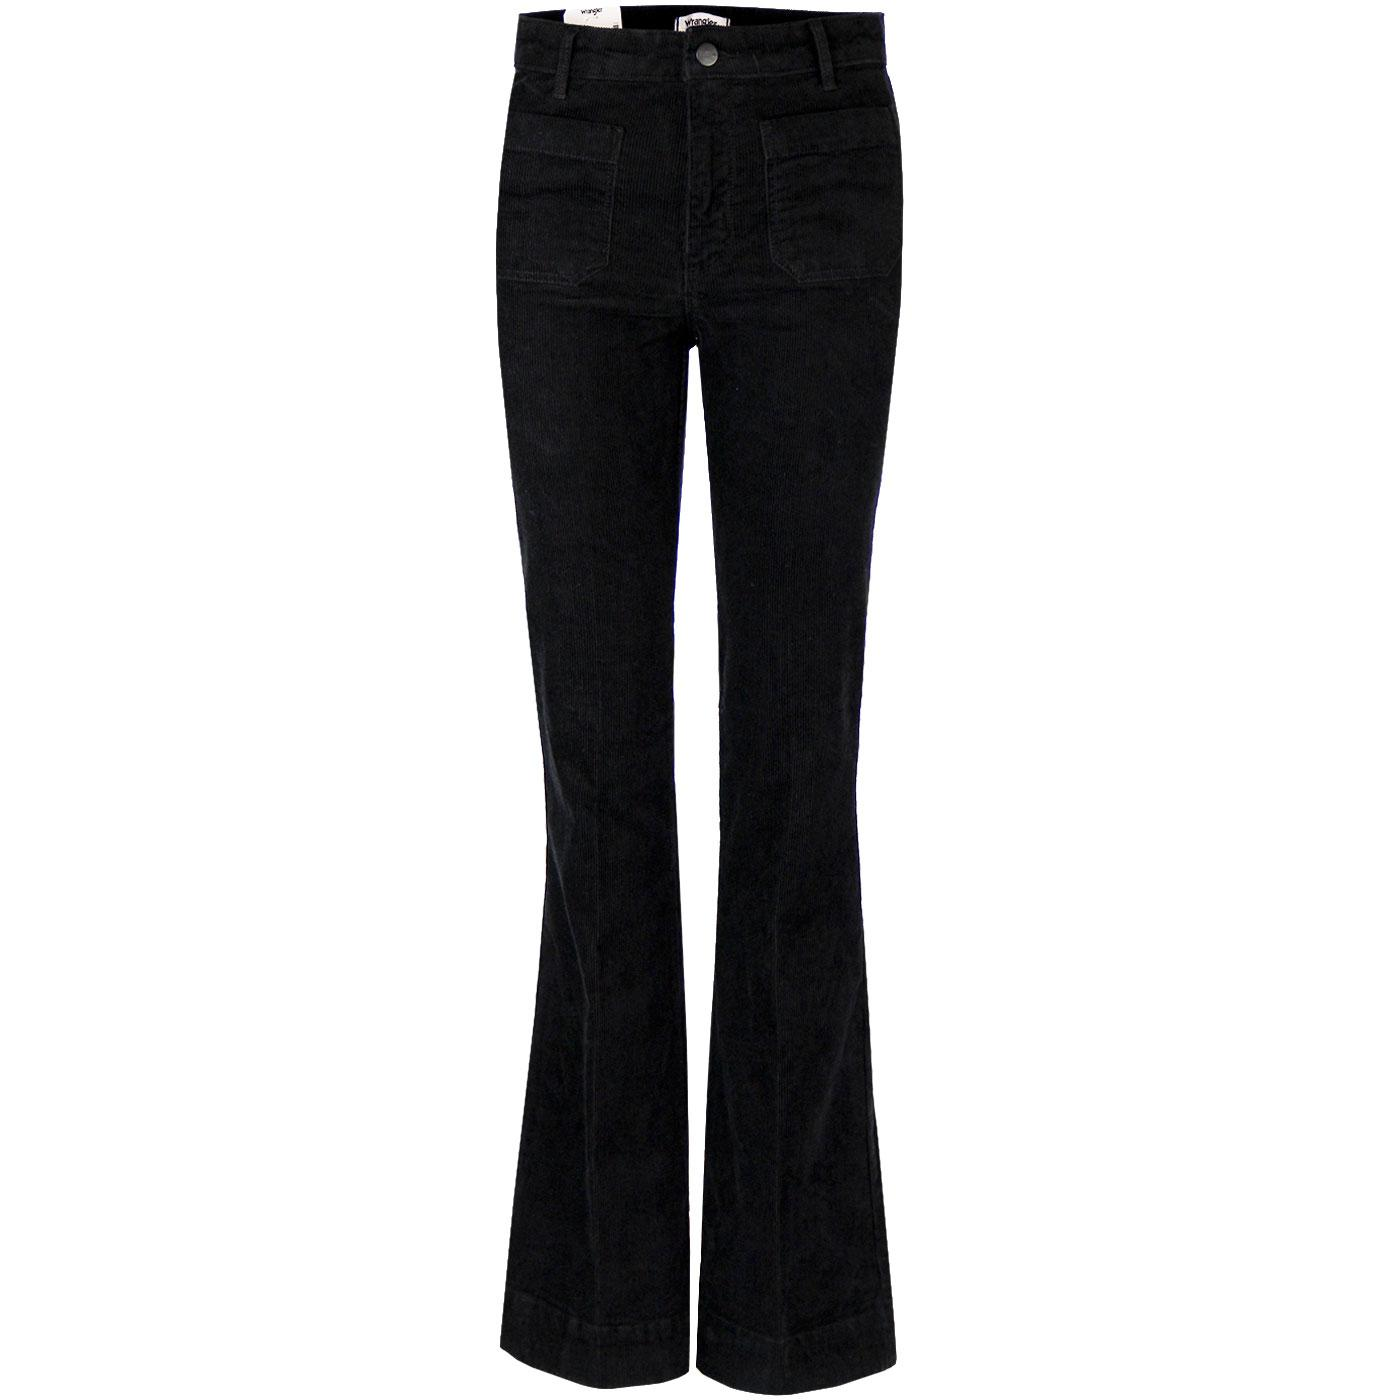 WRANGLER Women's 70's High Waist Cord Flared Jeans